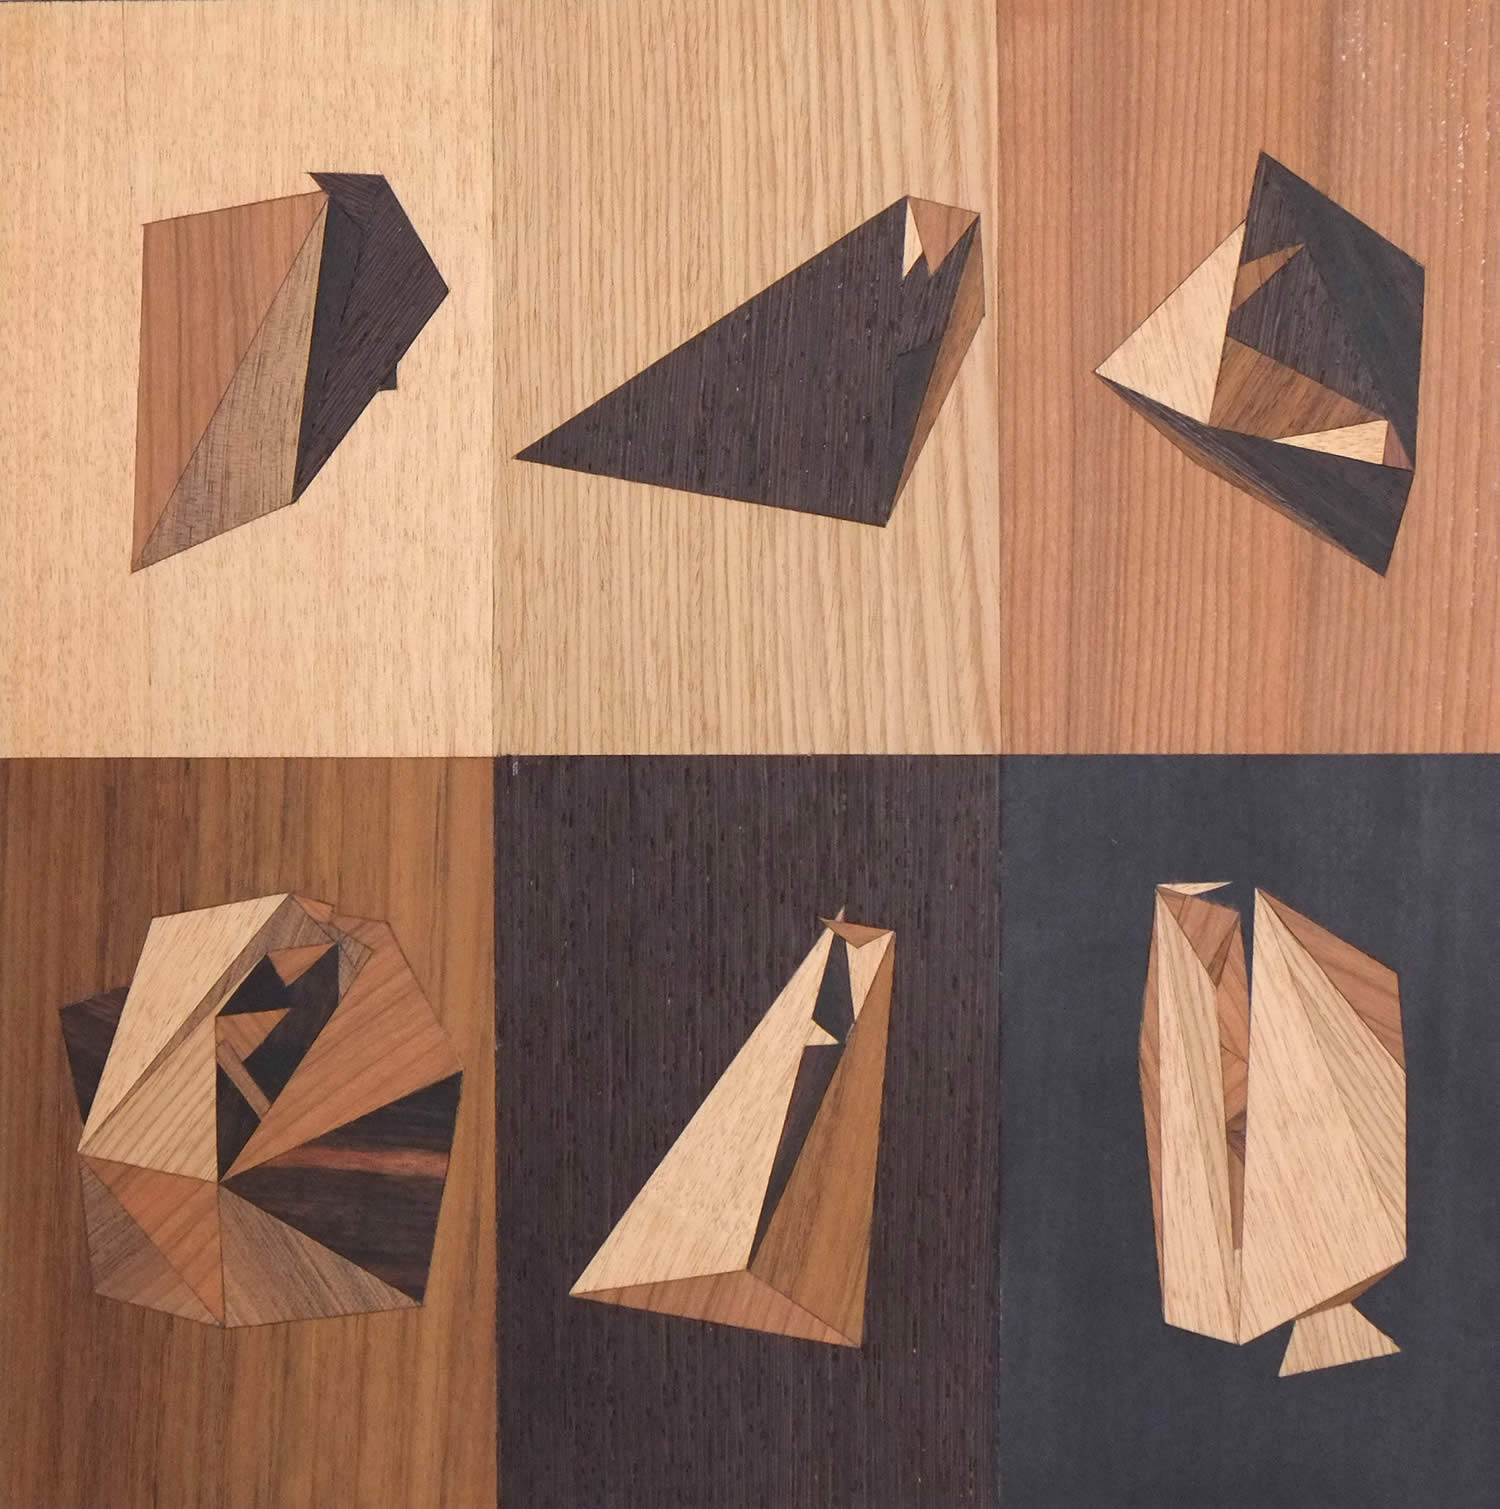 6 different colored wood pieces with geometric shapes, quid by rocco pezzella